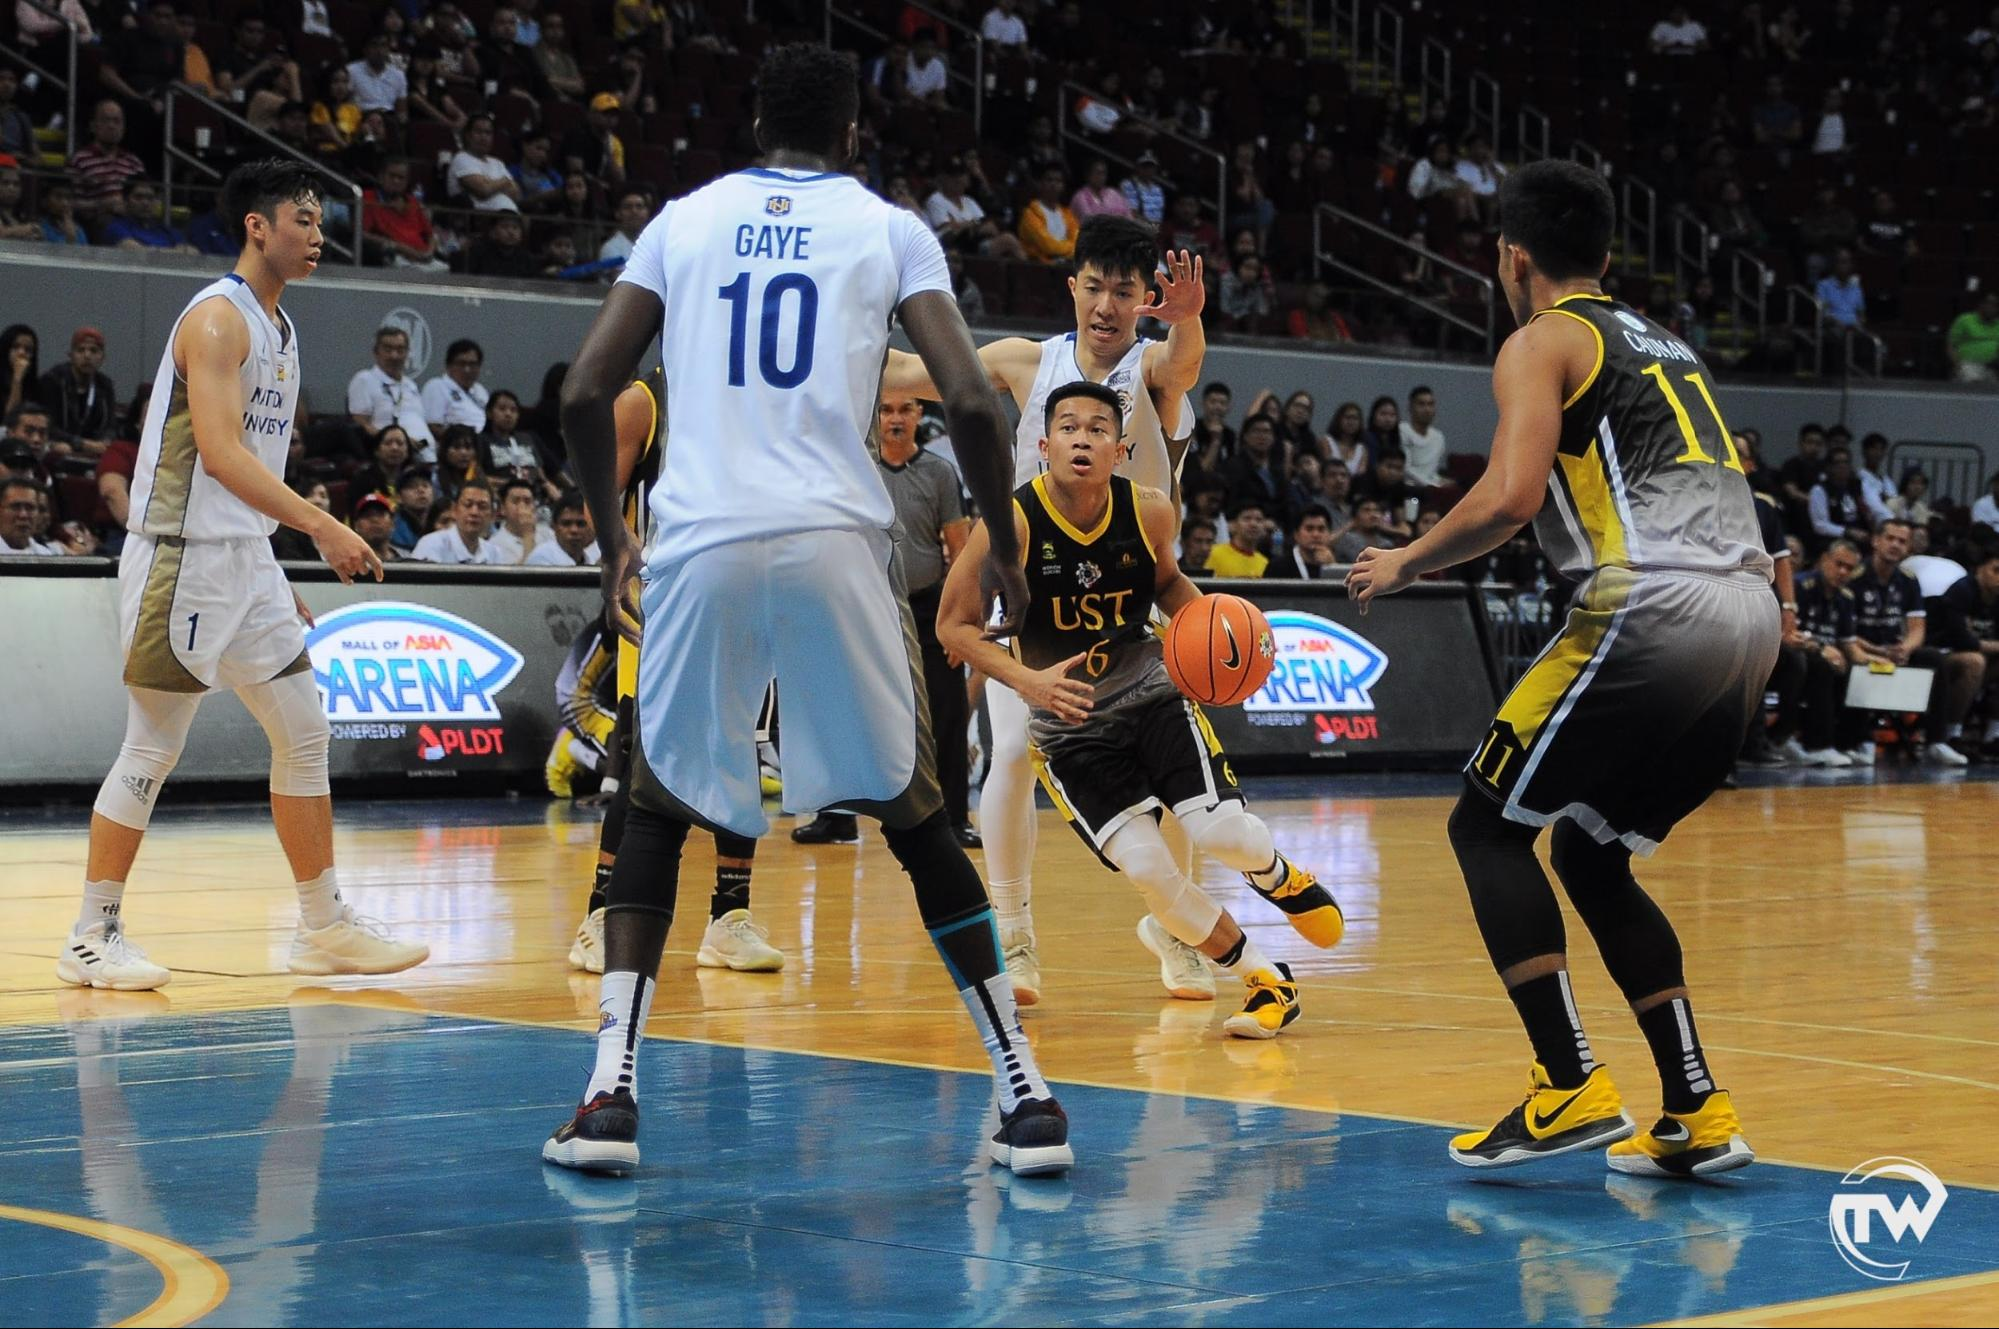 uaap basketball ust vs nu